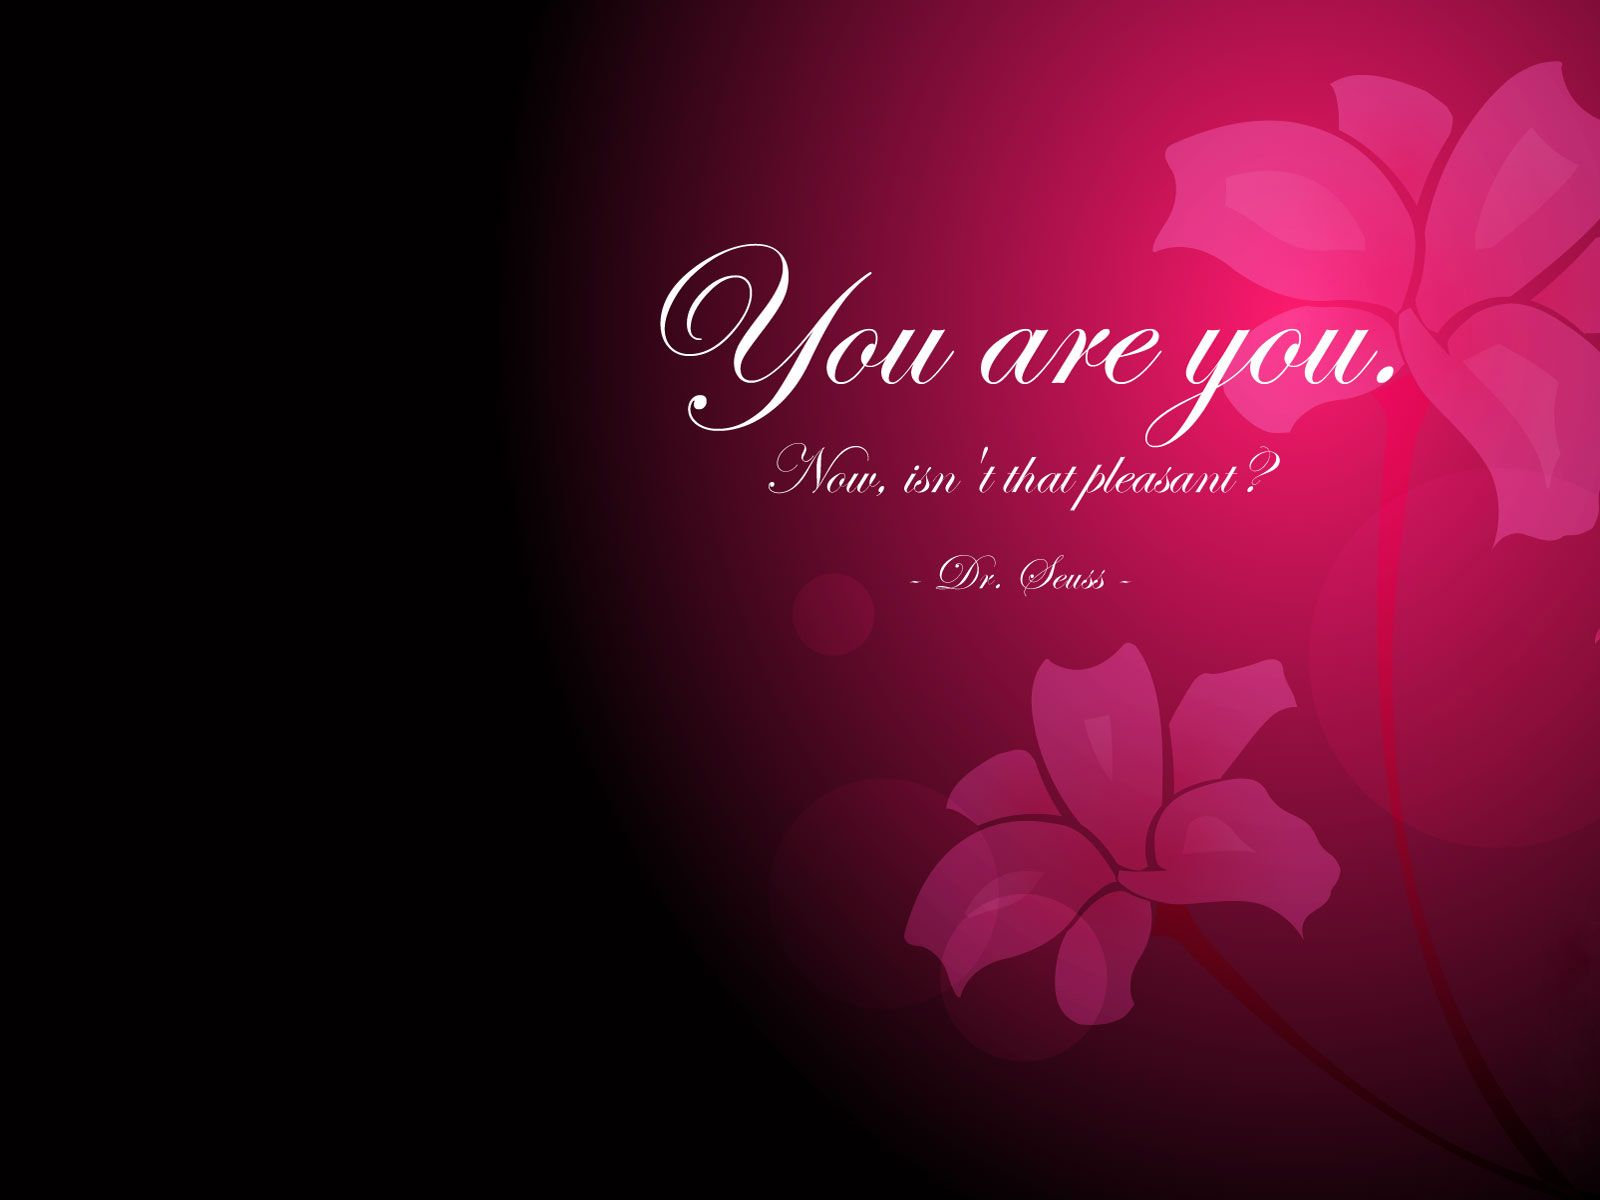 Beautiful Love Quote Image Wallpaper for Valentines Day